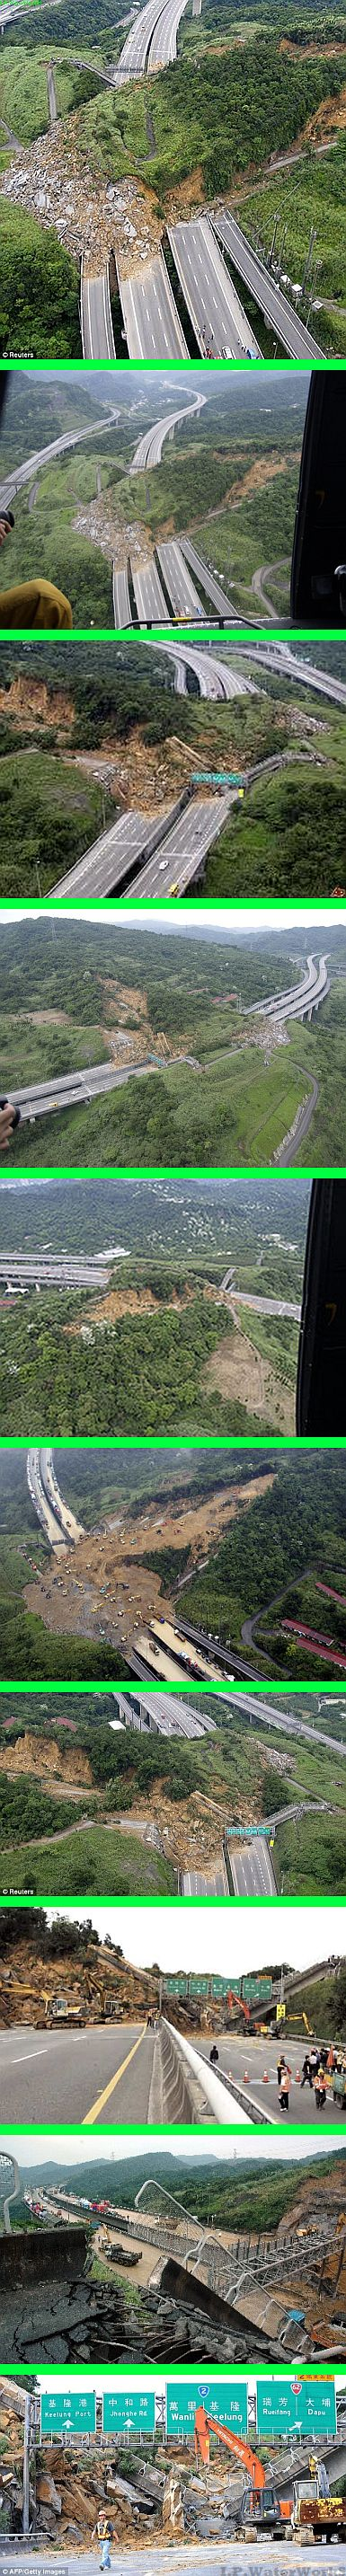 Real not a hoax: Usually only the first image is seen. - The landslide reportedly blocked a 300-meter long of a major road, the No.3 Freeway between Taipei and Keelung /